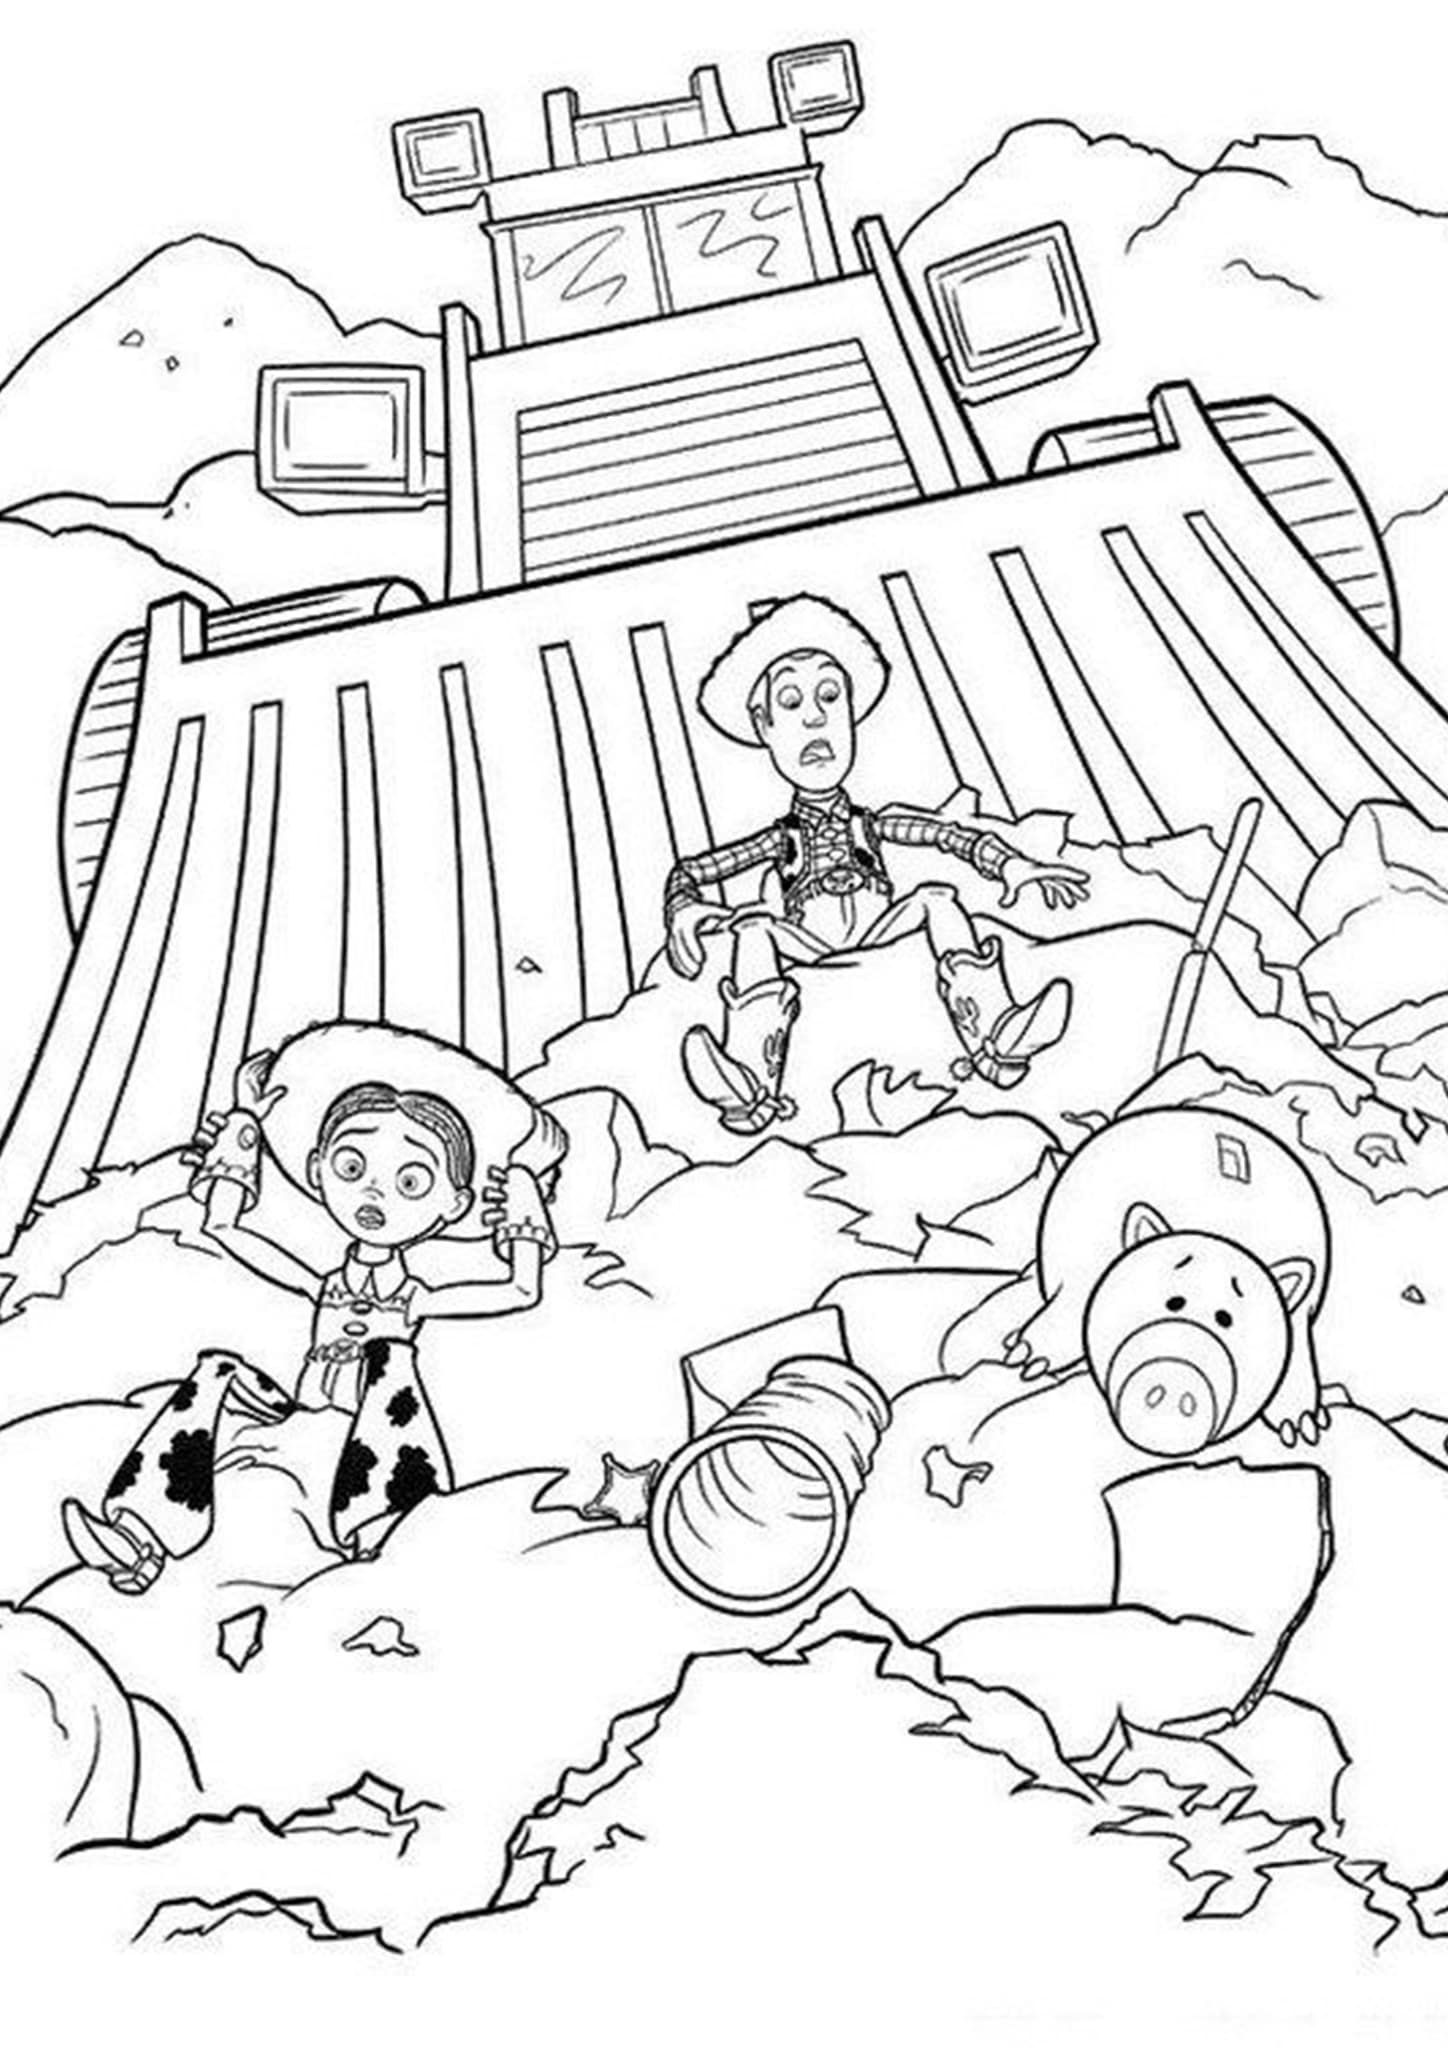 Disney Toy Story Coloring Pages Concept